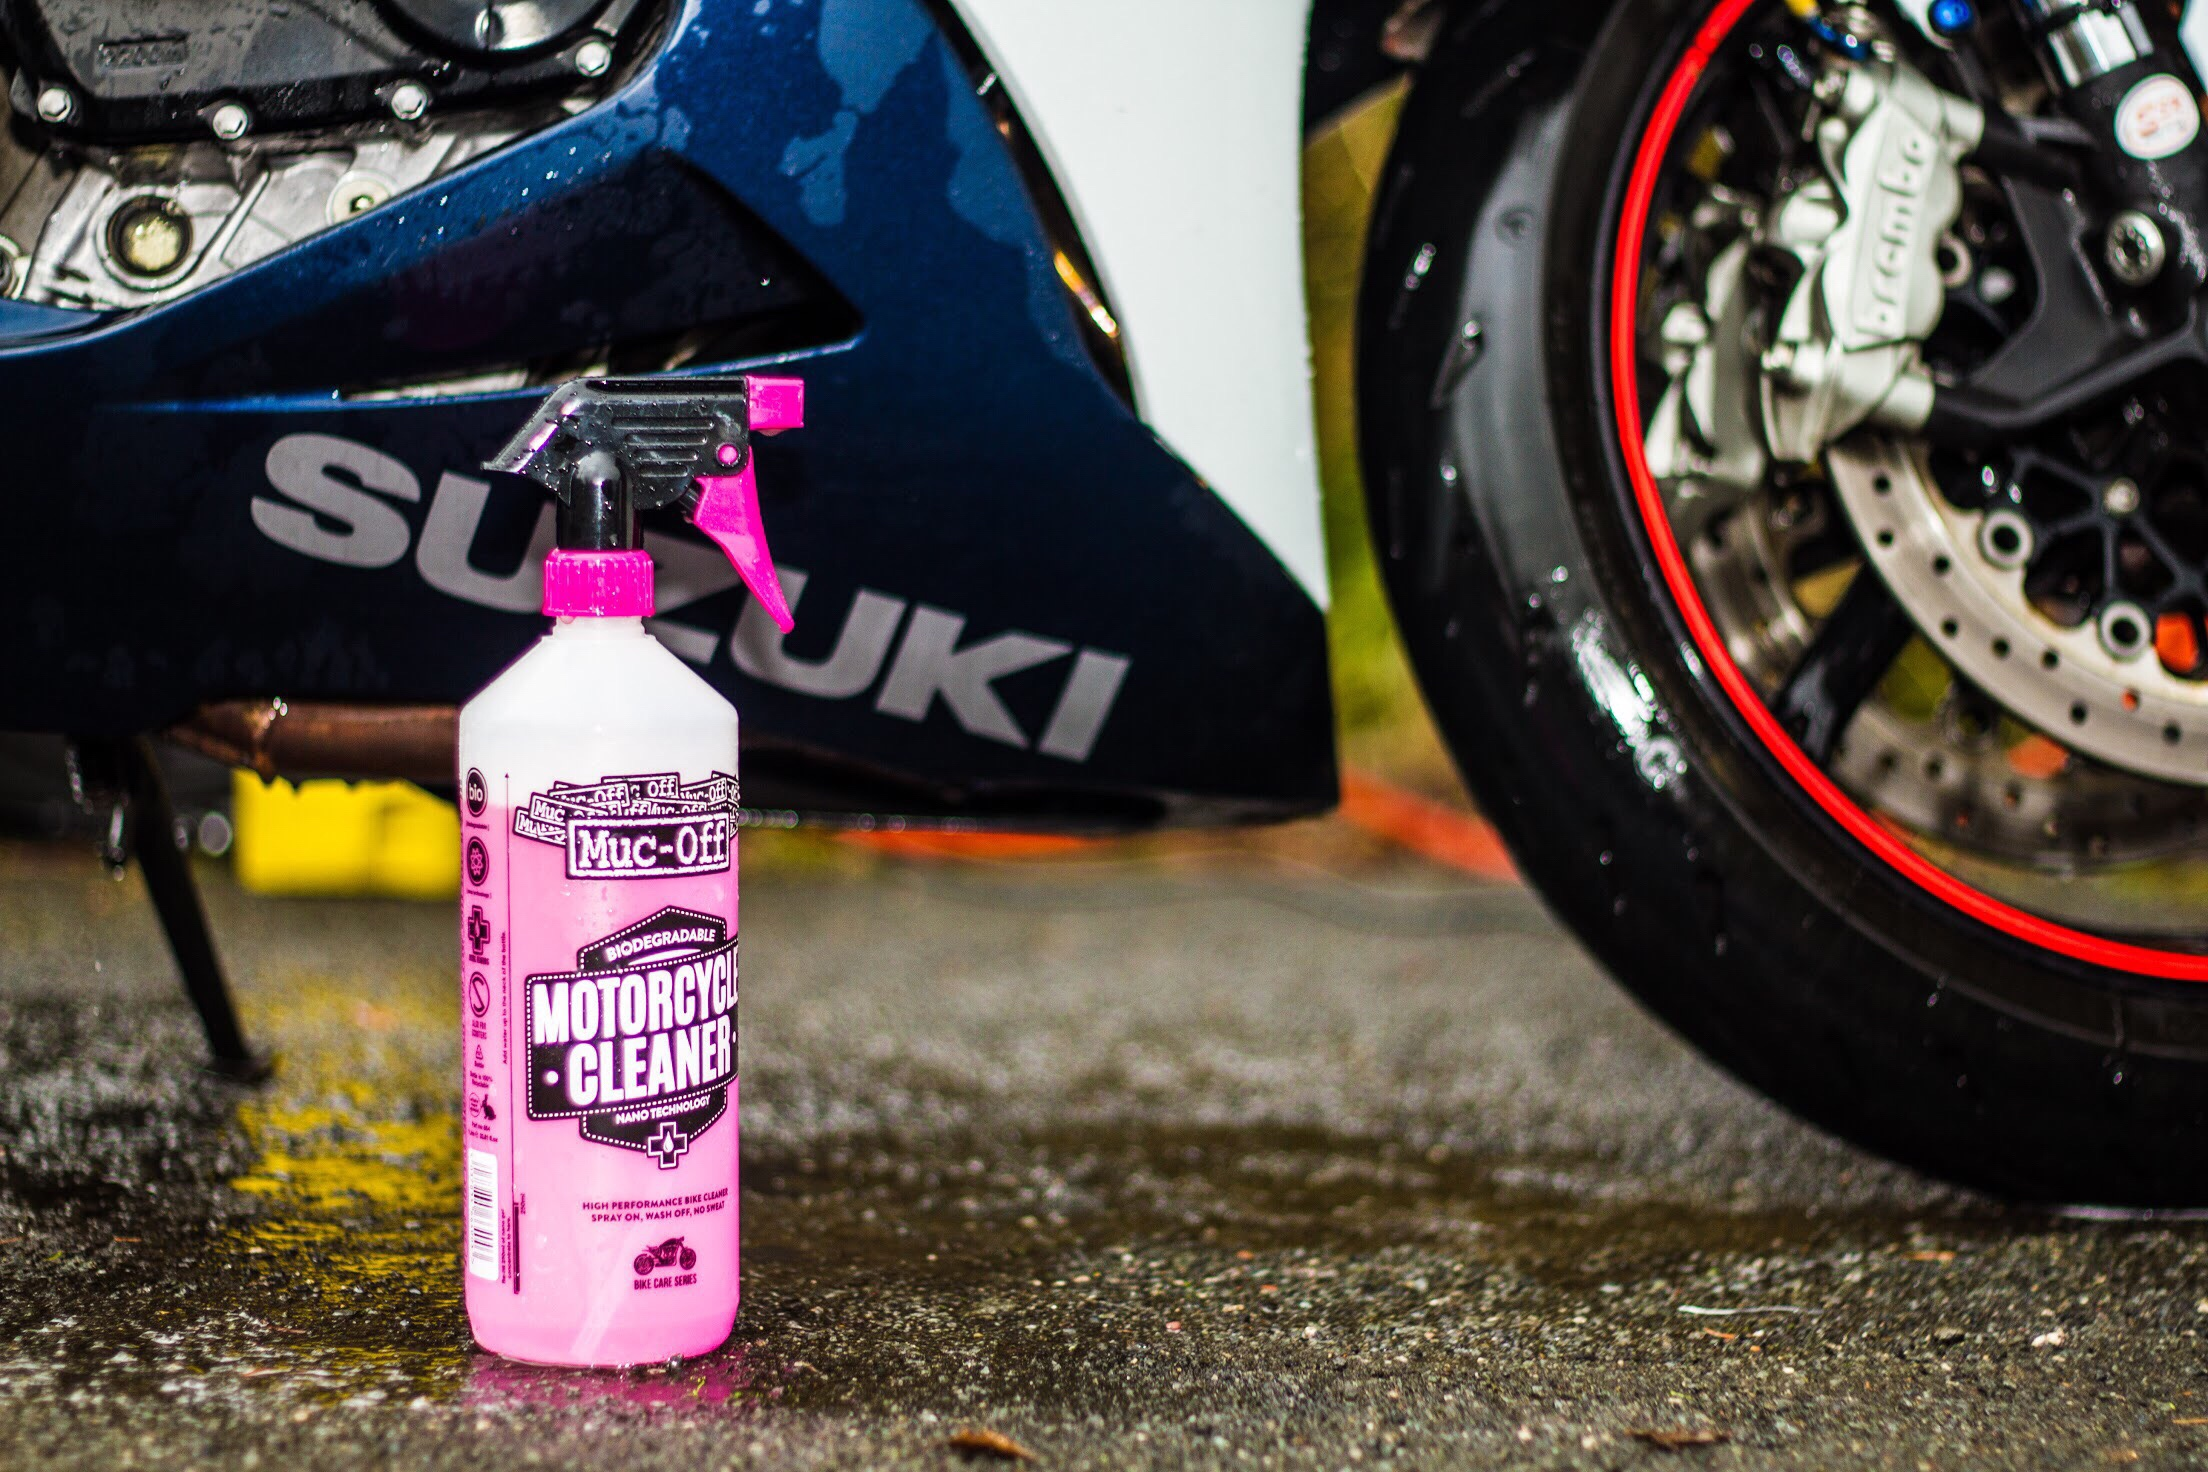 Muc-off Nanotec Motorcycle cleaner